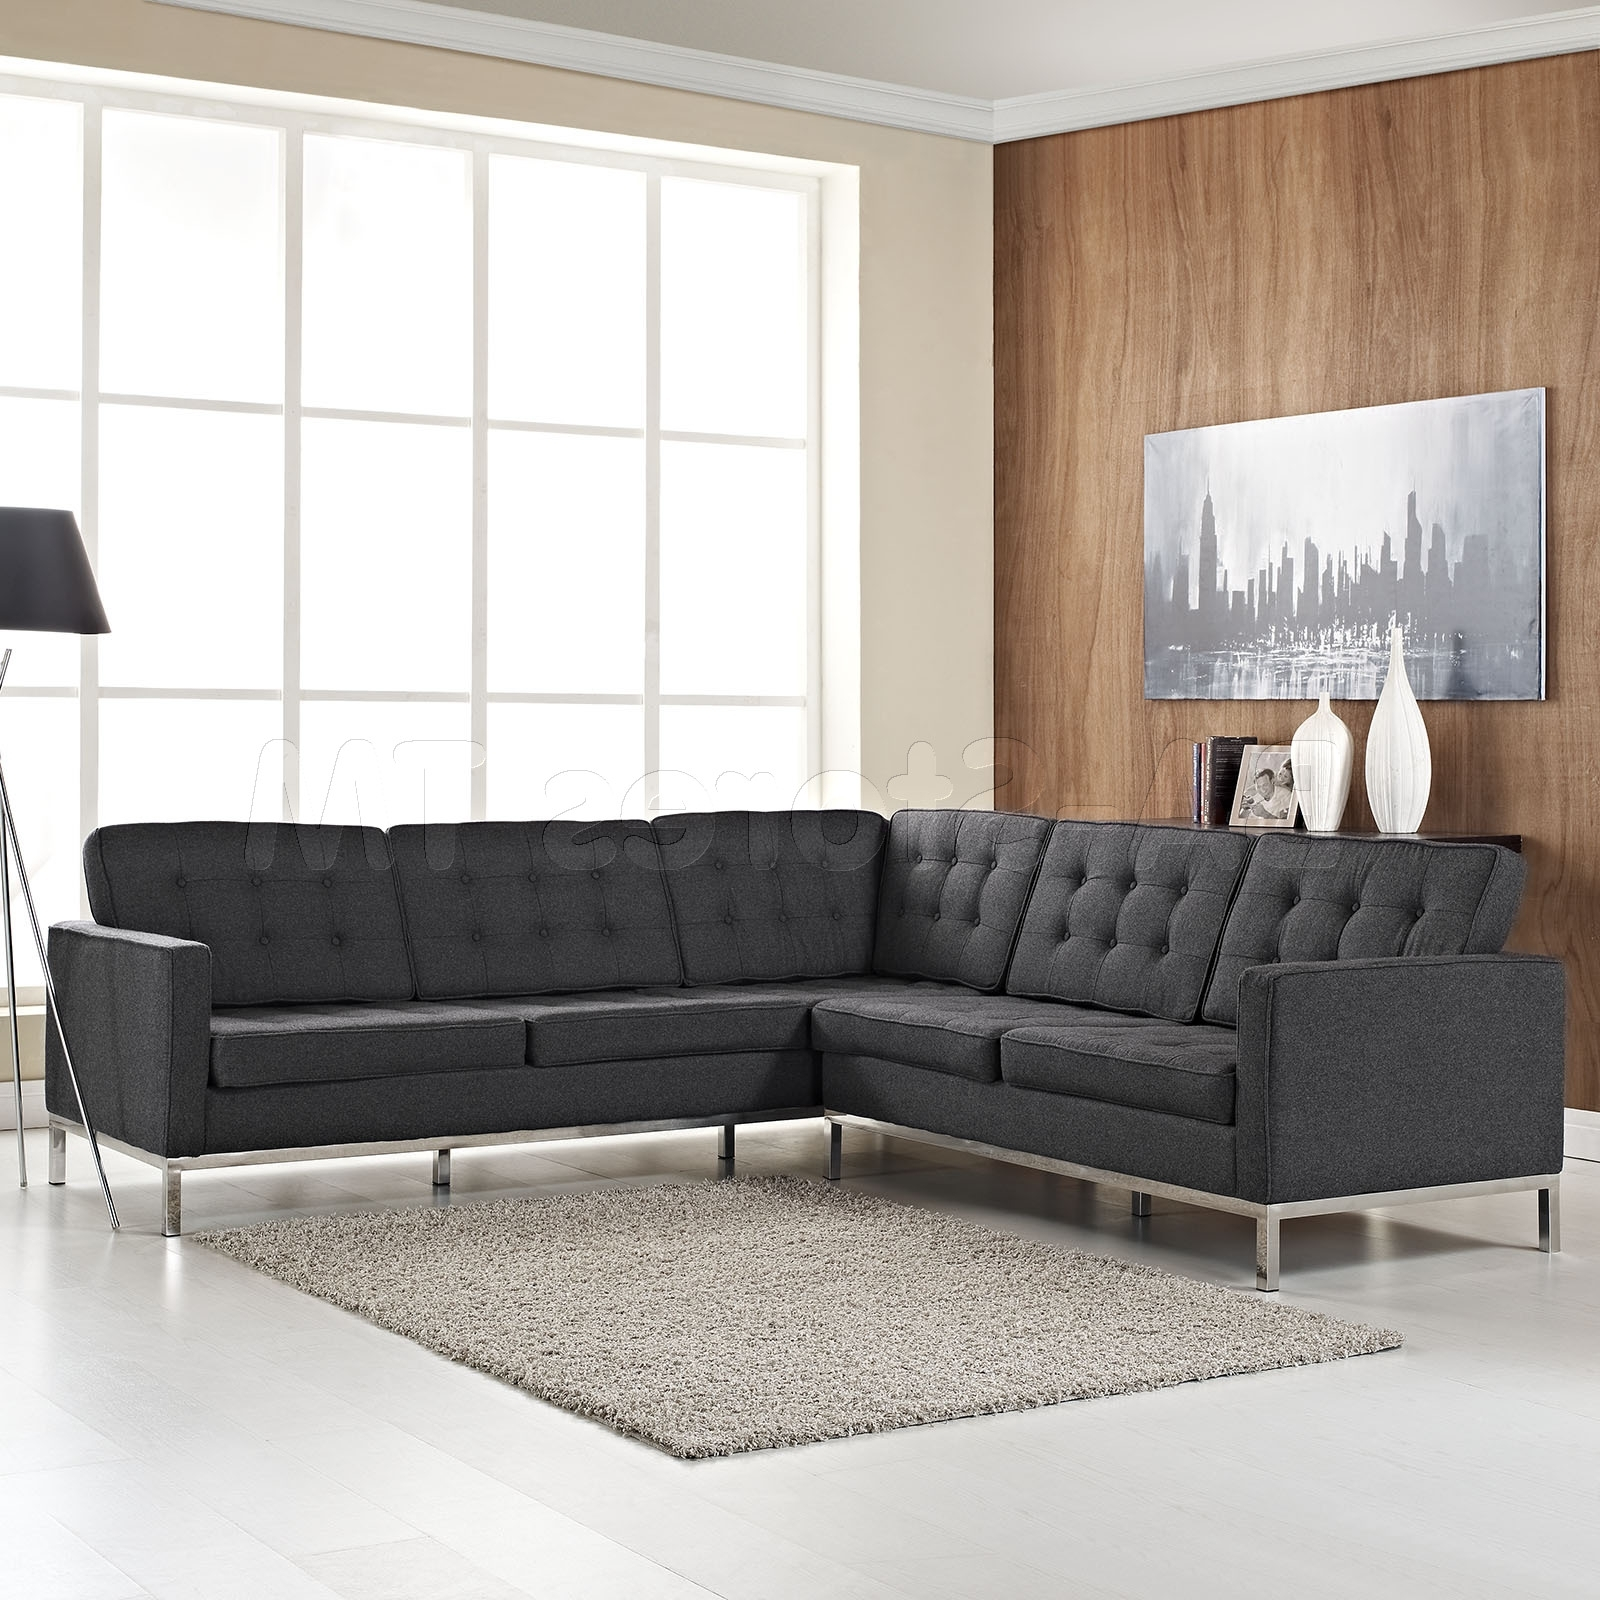 2018 Affordable Tufted Sofas Throughout Couches Design New In Impressive Reversible Sectional Sofa Chaise (View 16 of 20)